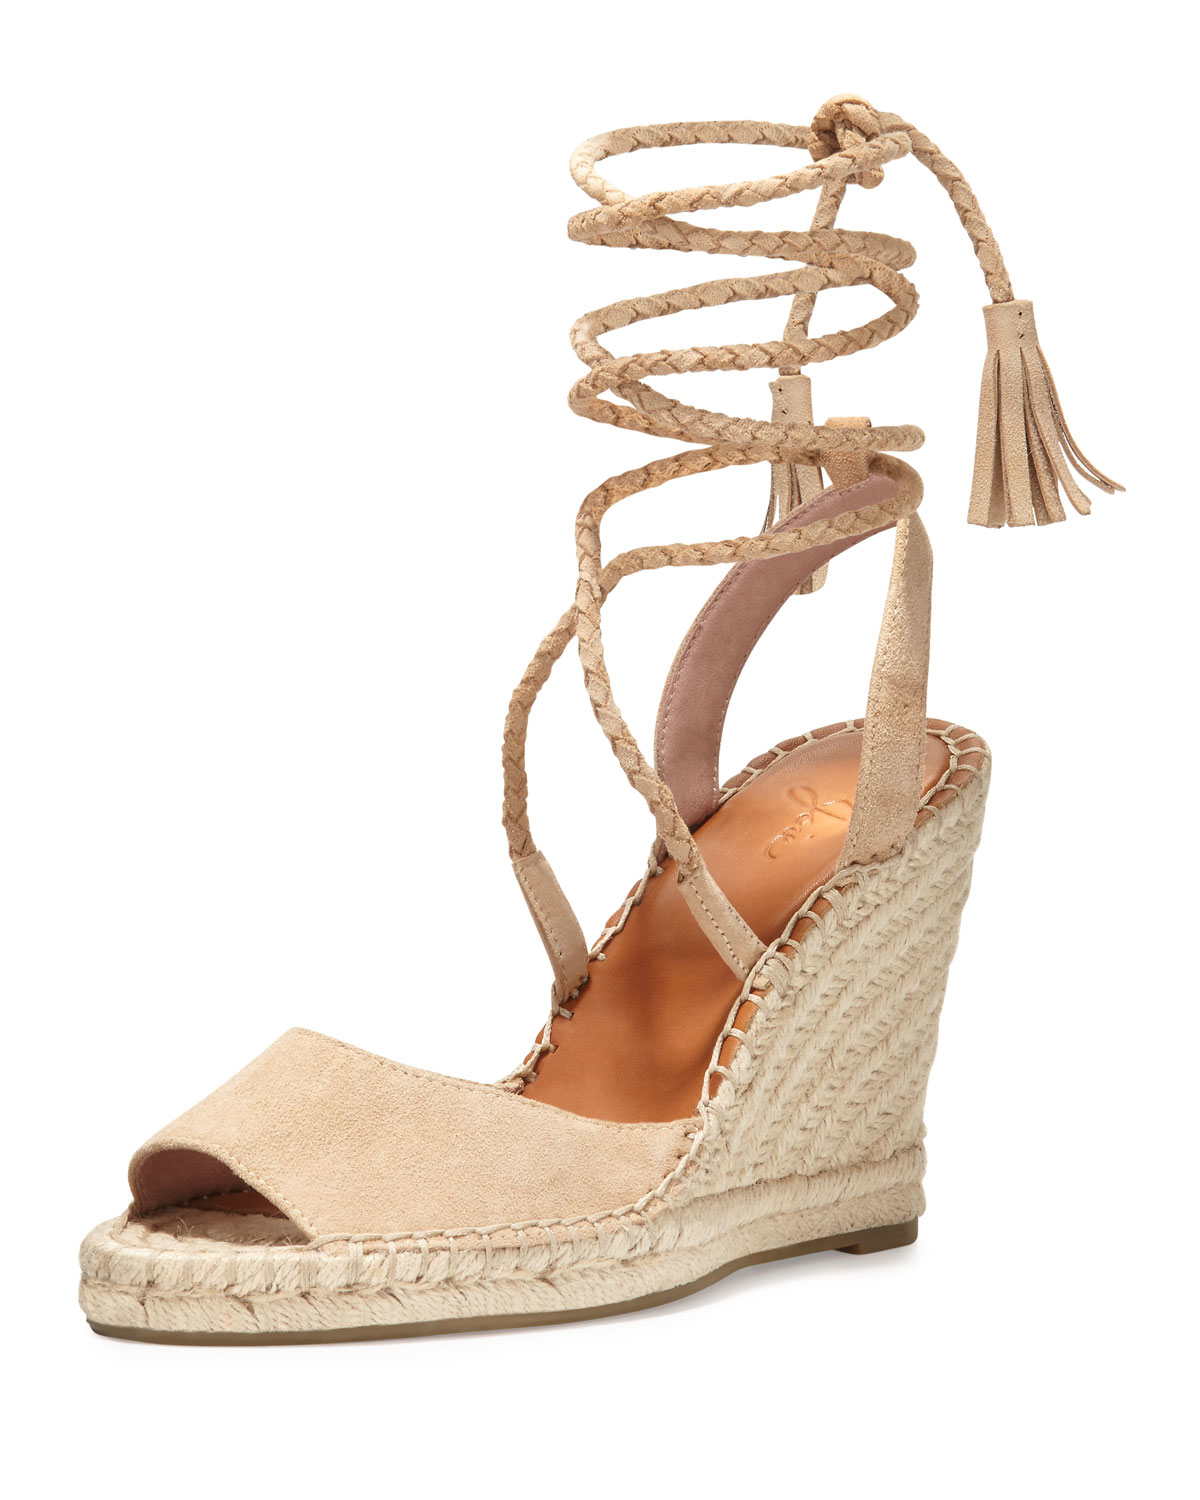 b2522934655 Lyst - Joie Phyllis Suede Wedge Espadrilles in Natural